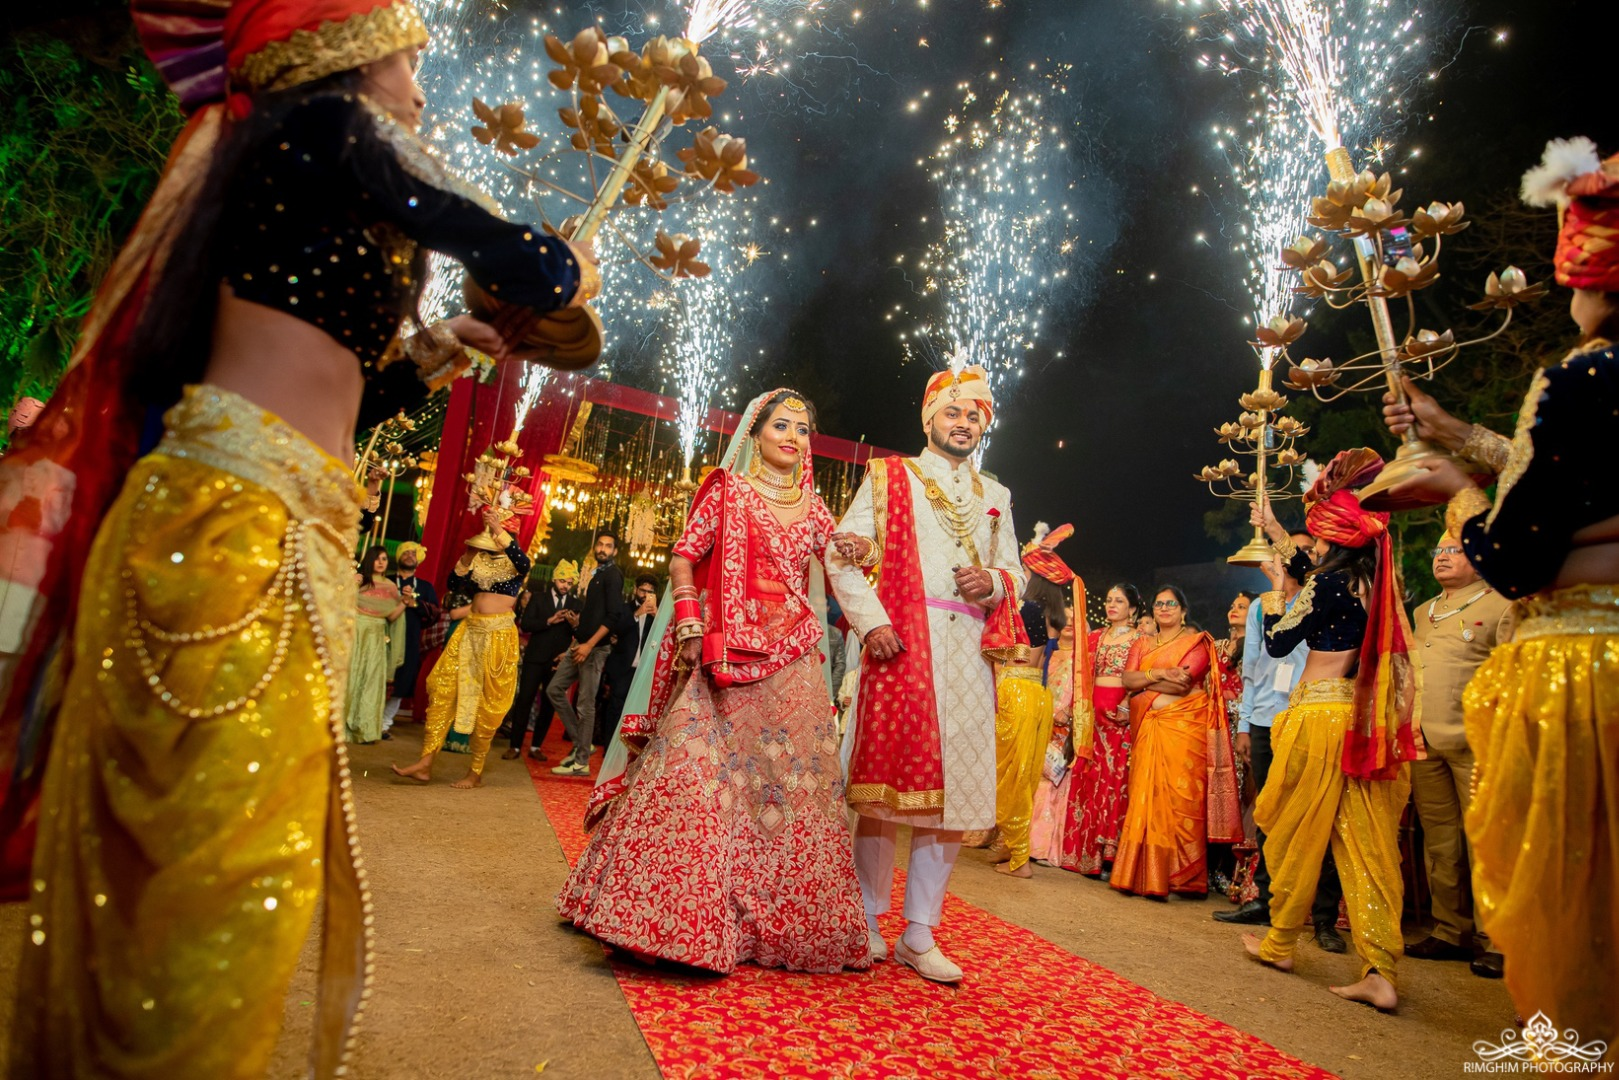 Bride and Groom entry with Fireworks